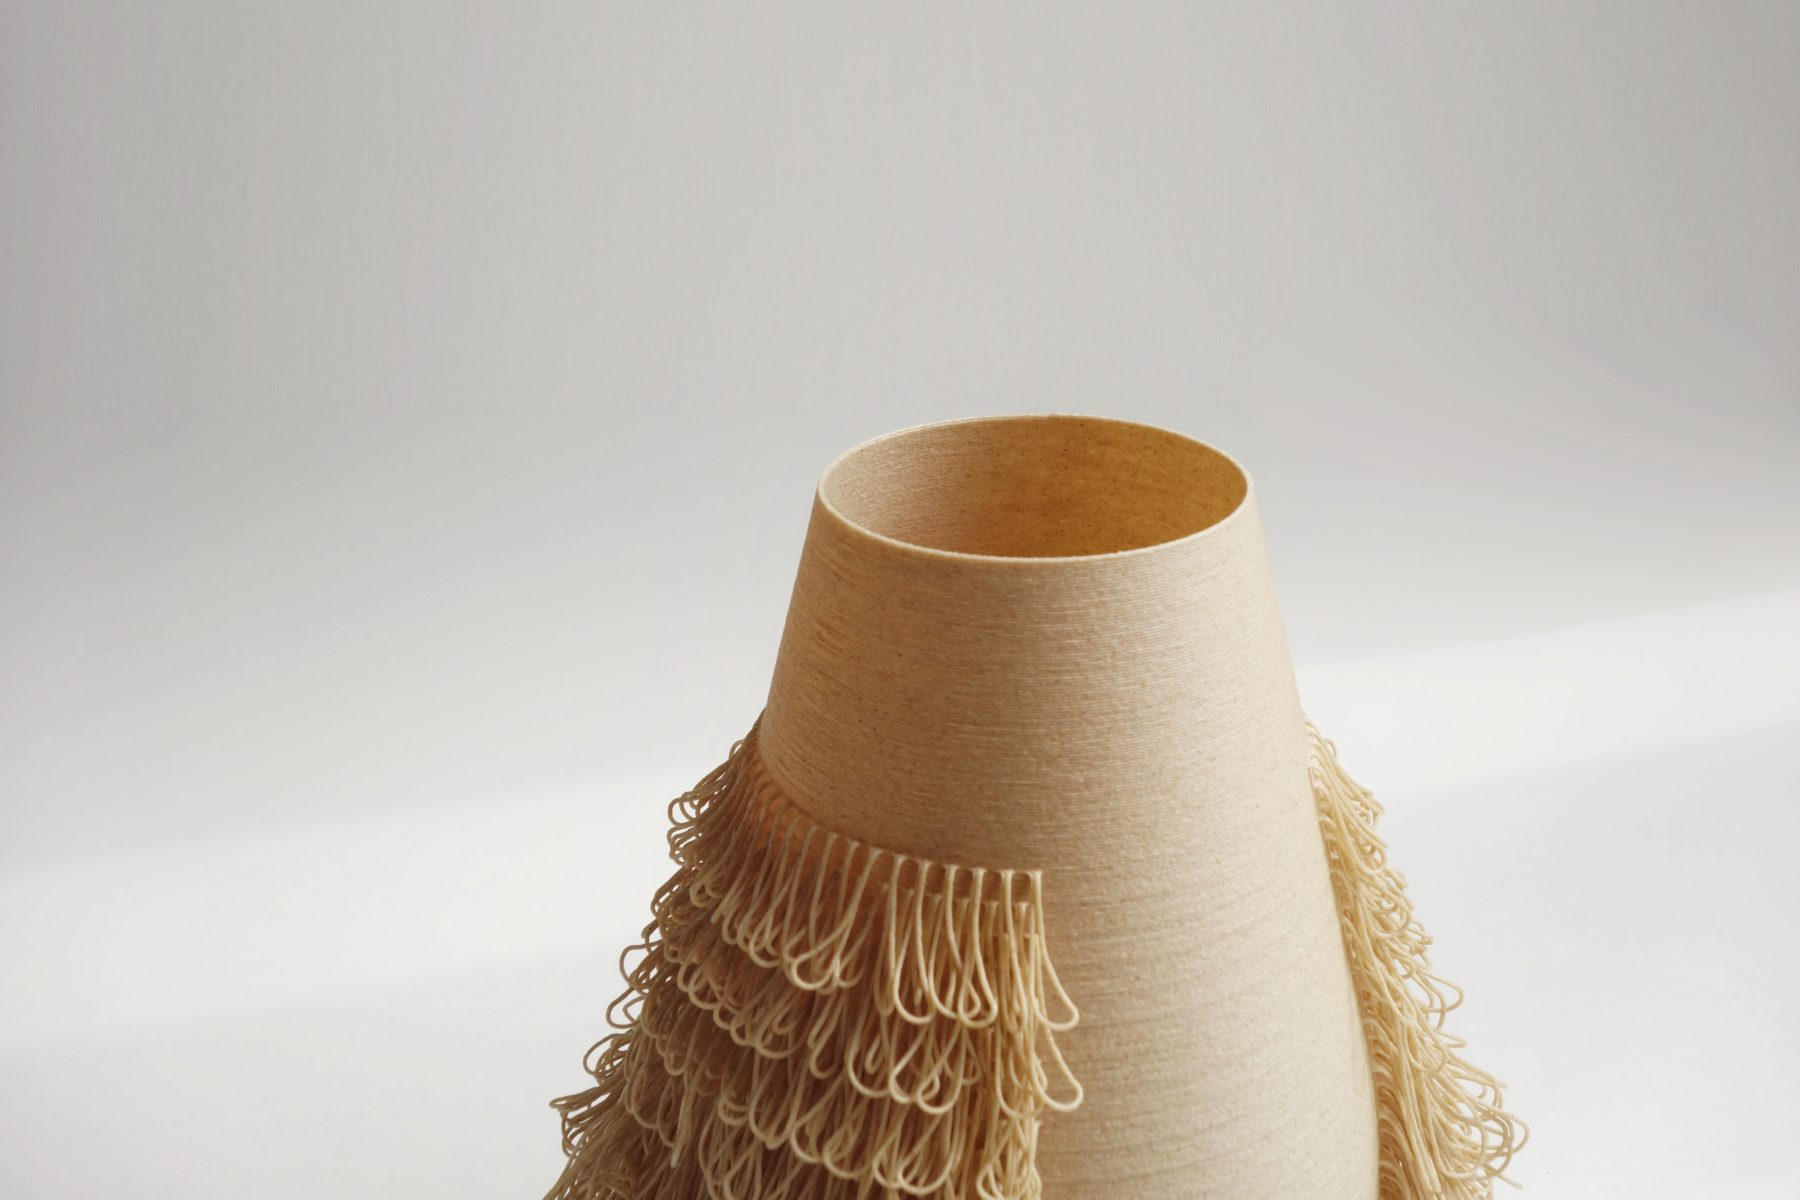 BLOND vase - POILU Collection - 3d printed vases by bold-design for AYBAR Gallery - www.bold-design.fr